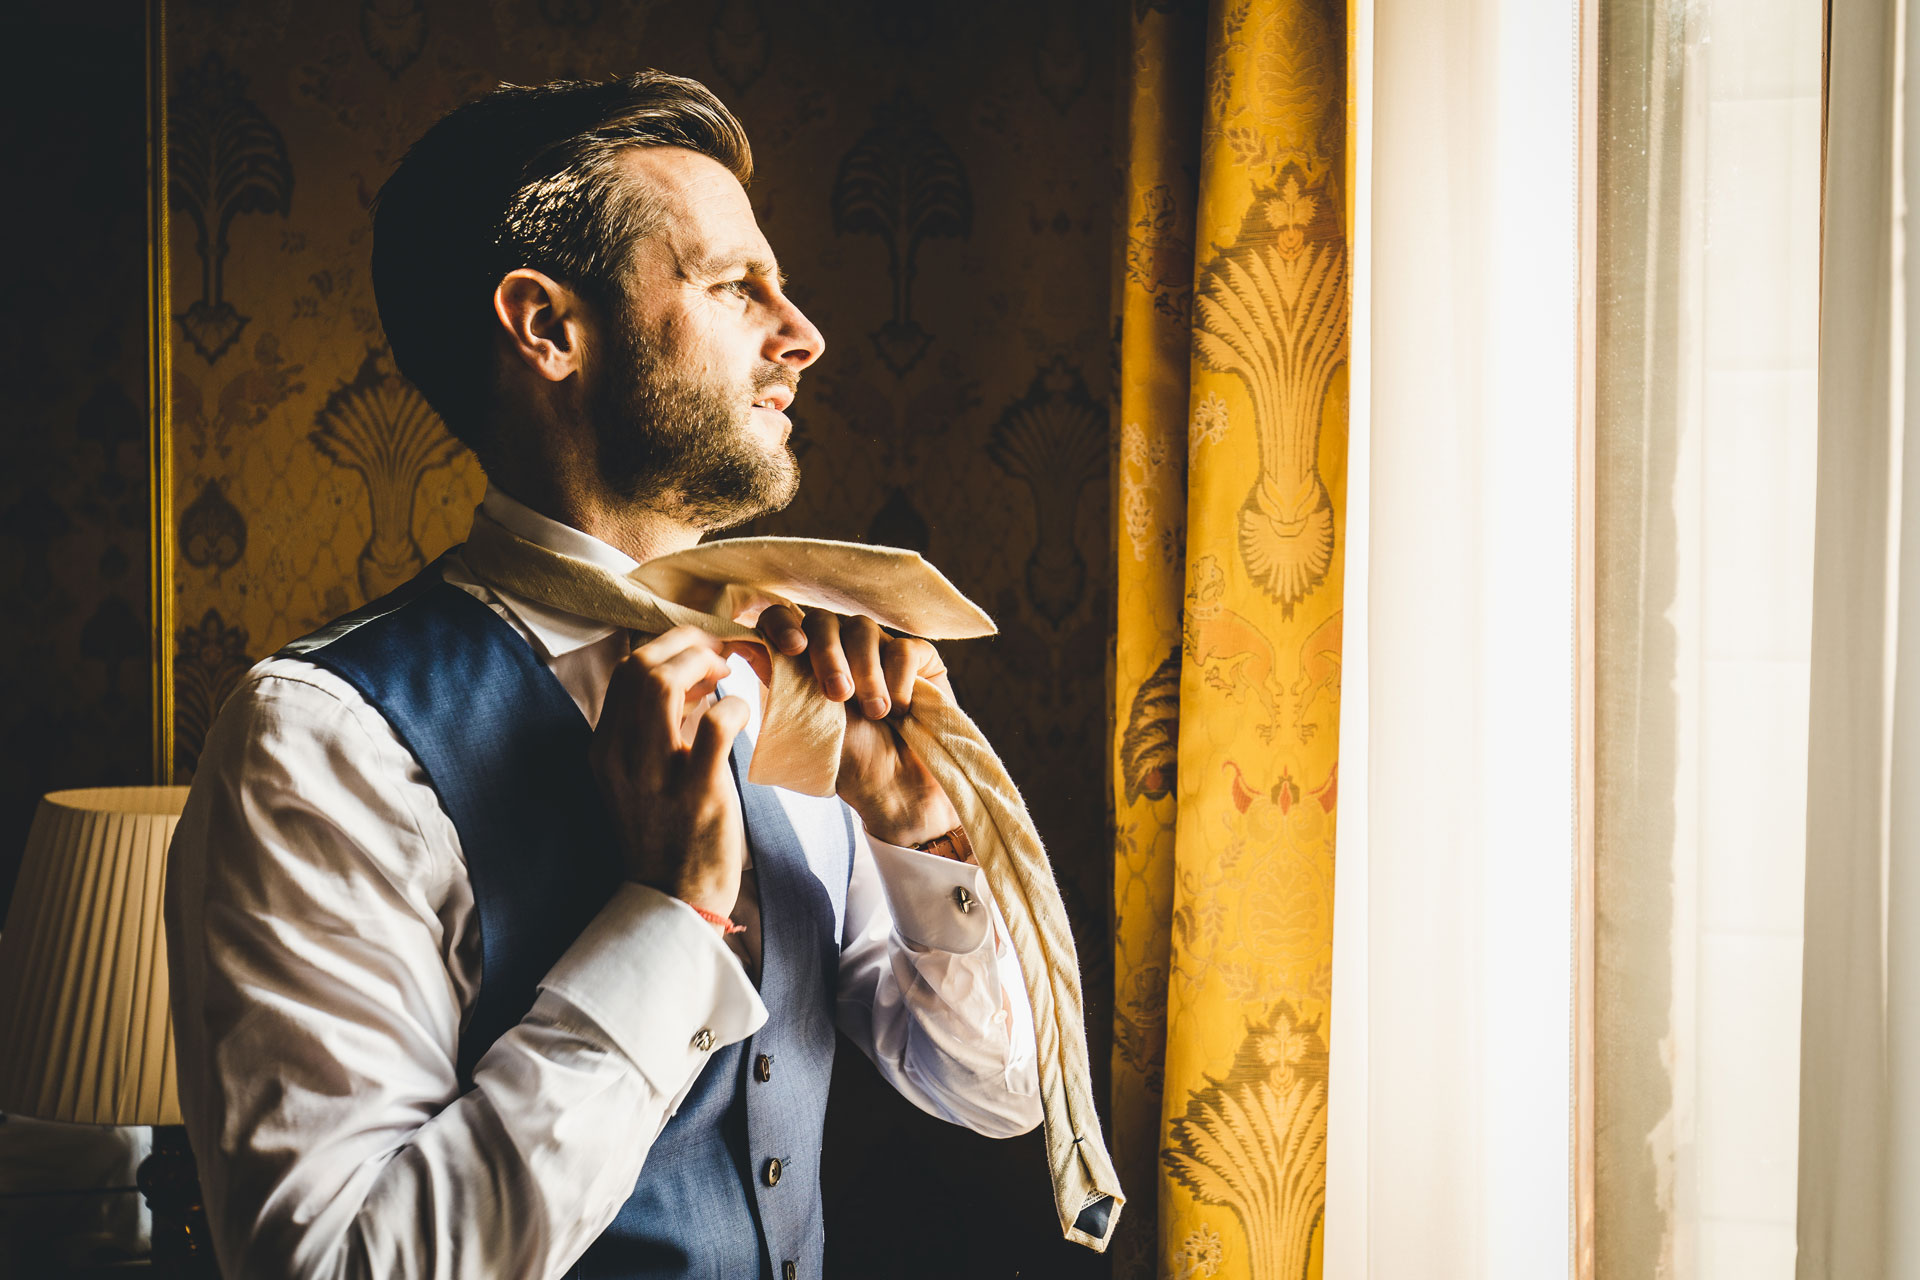 Bauer Palazzo Venice, Italy Wedding Photographer | The groom looks out to the city below